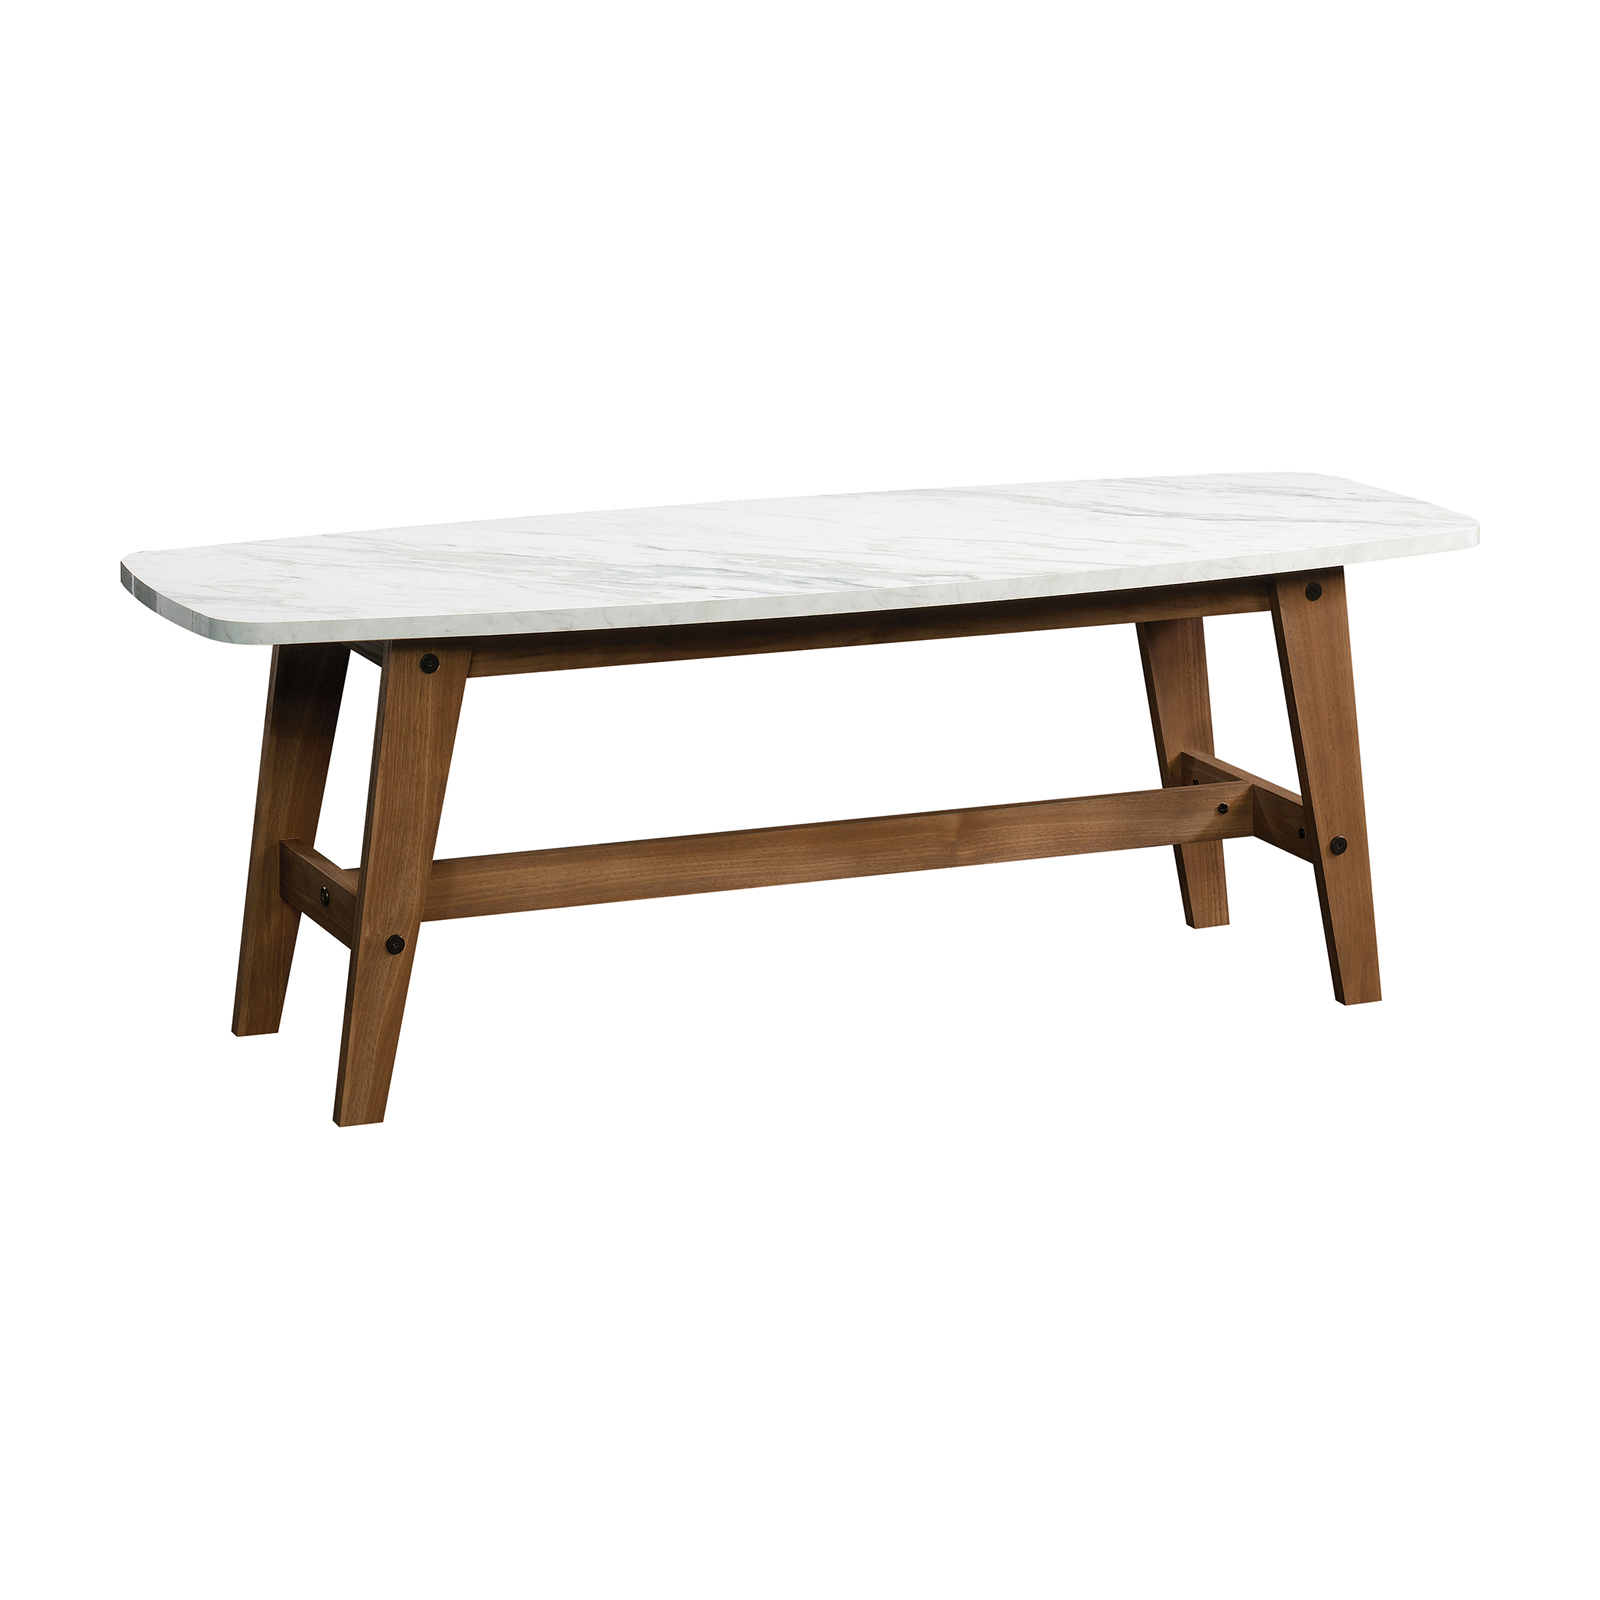 Sauder Soft Modern Coffee Table Hayneedle - Walnut and marble coffee table